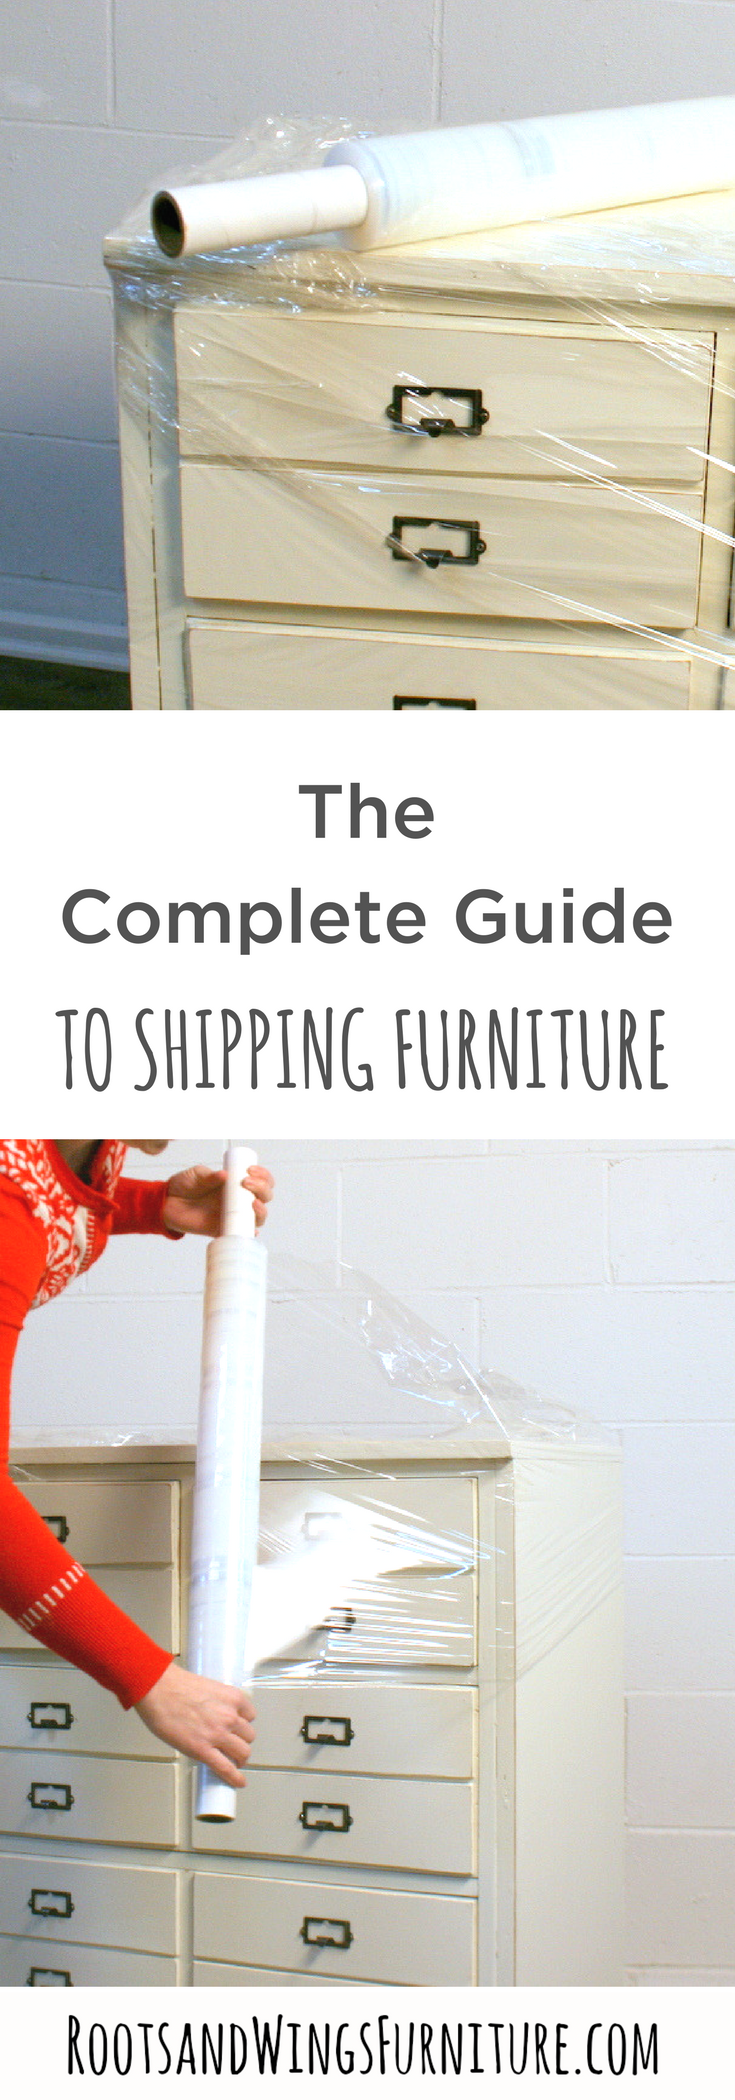 Charmant An EBook Teaching You The Basics Of Shipping Furniture. What Companies To  Use And How Each Process Works. By Jenni Of Roots And Wings Furniture LLC.